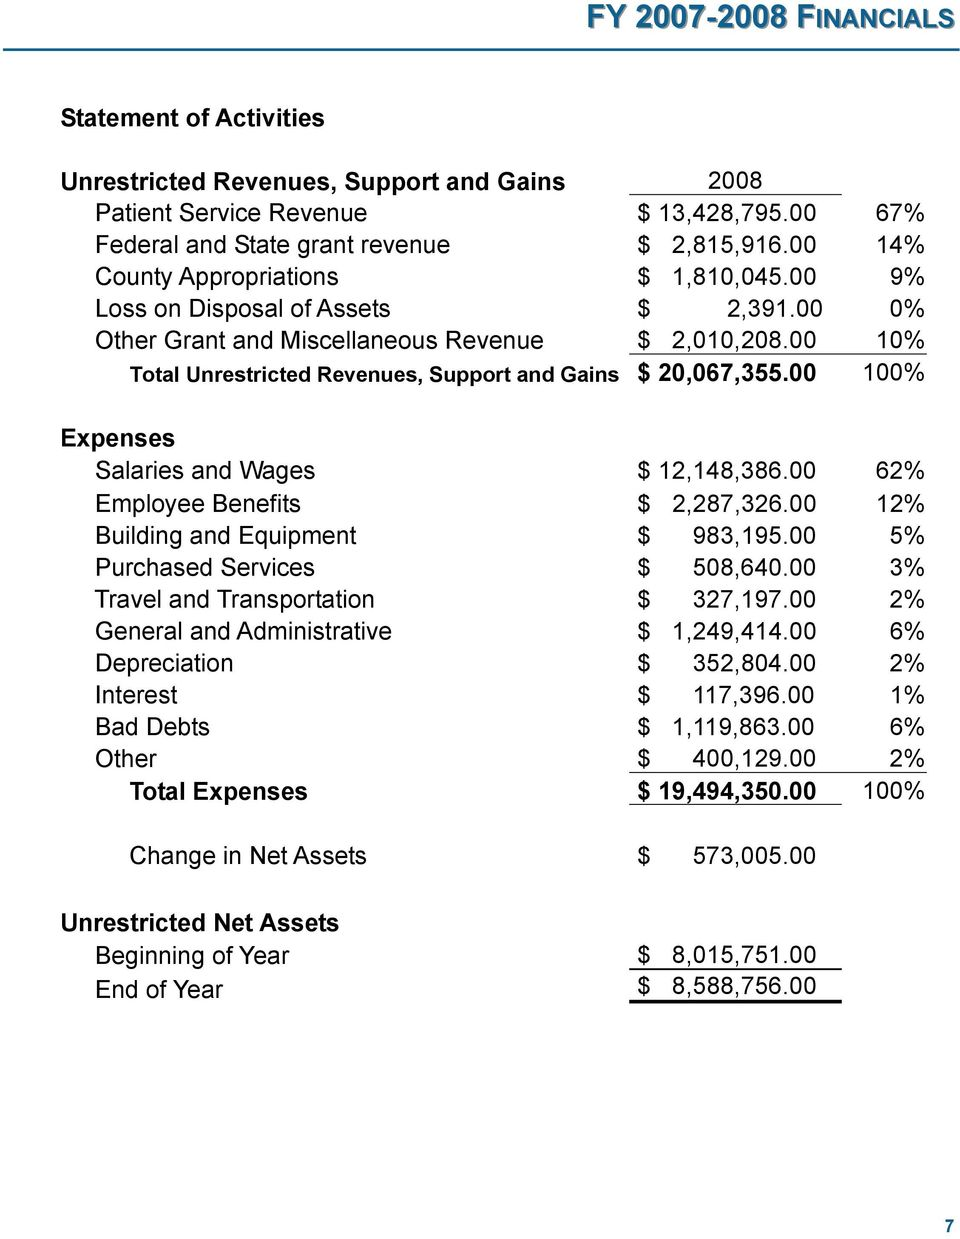 00 10% Total Unrestricted Revenues, Support and Gains $ 20,067,355.00 100% Expenses Salaries and Wages $ 12,148,386.00 62% Employee Benefits $ 2,287,326.00 12% Building and Equipment $ 983,195.